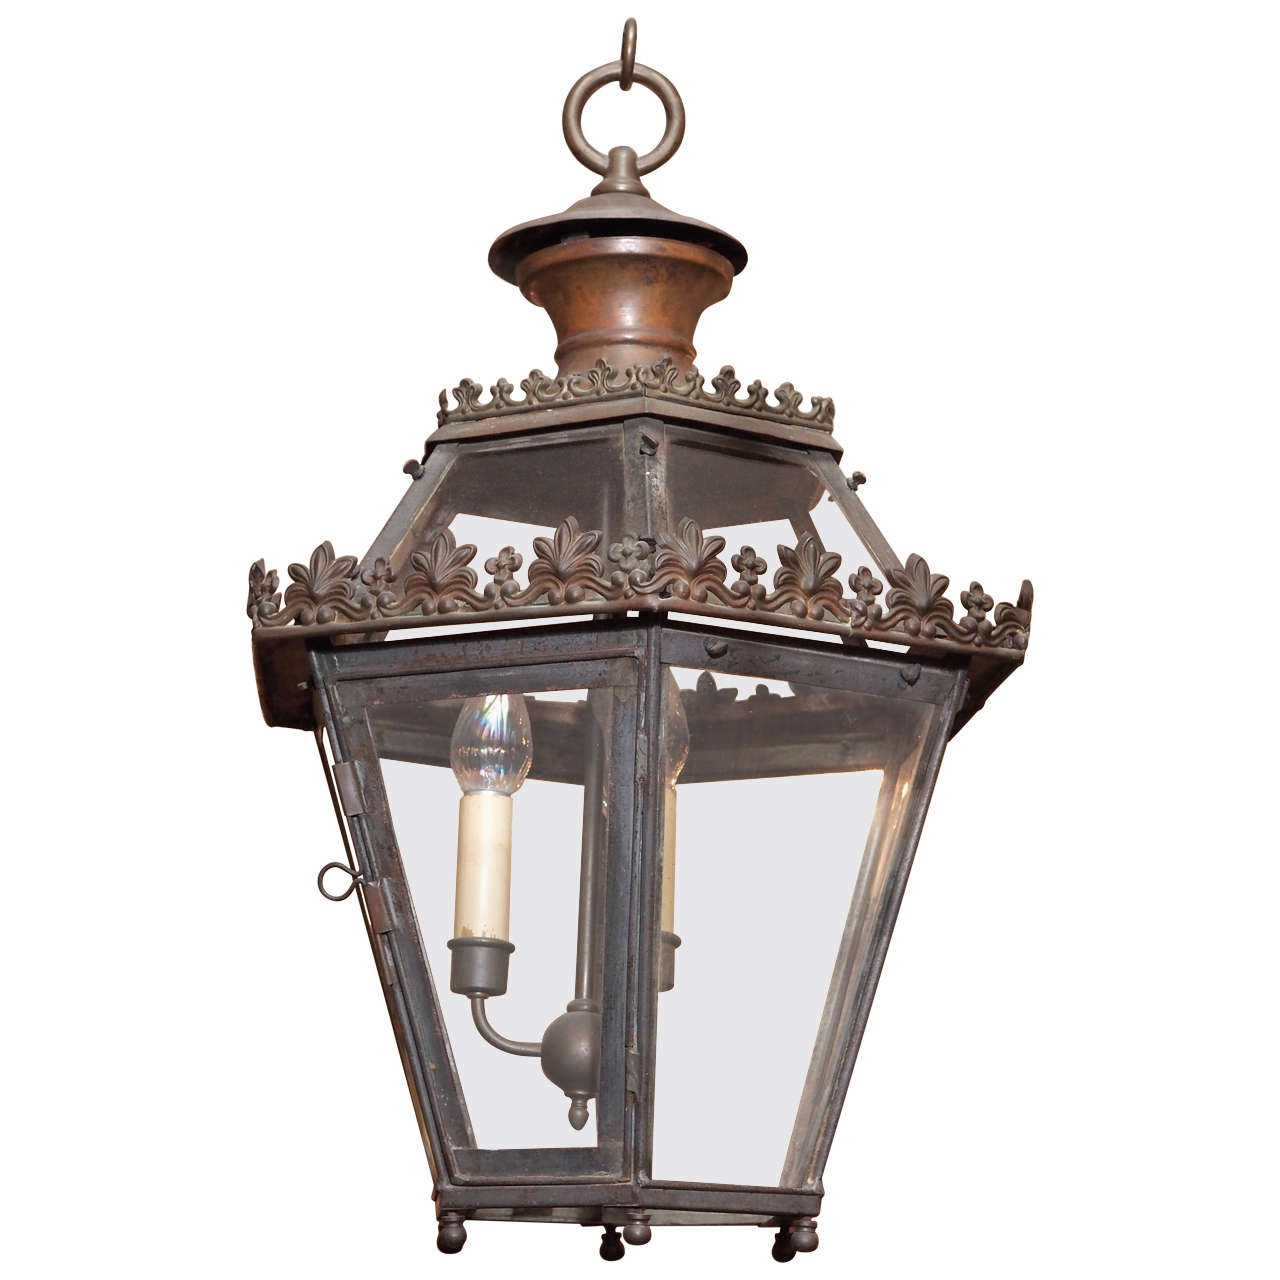 Antique French Iron Lantern For Sale at 1stdibs